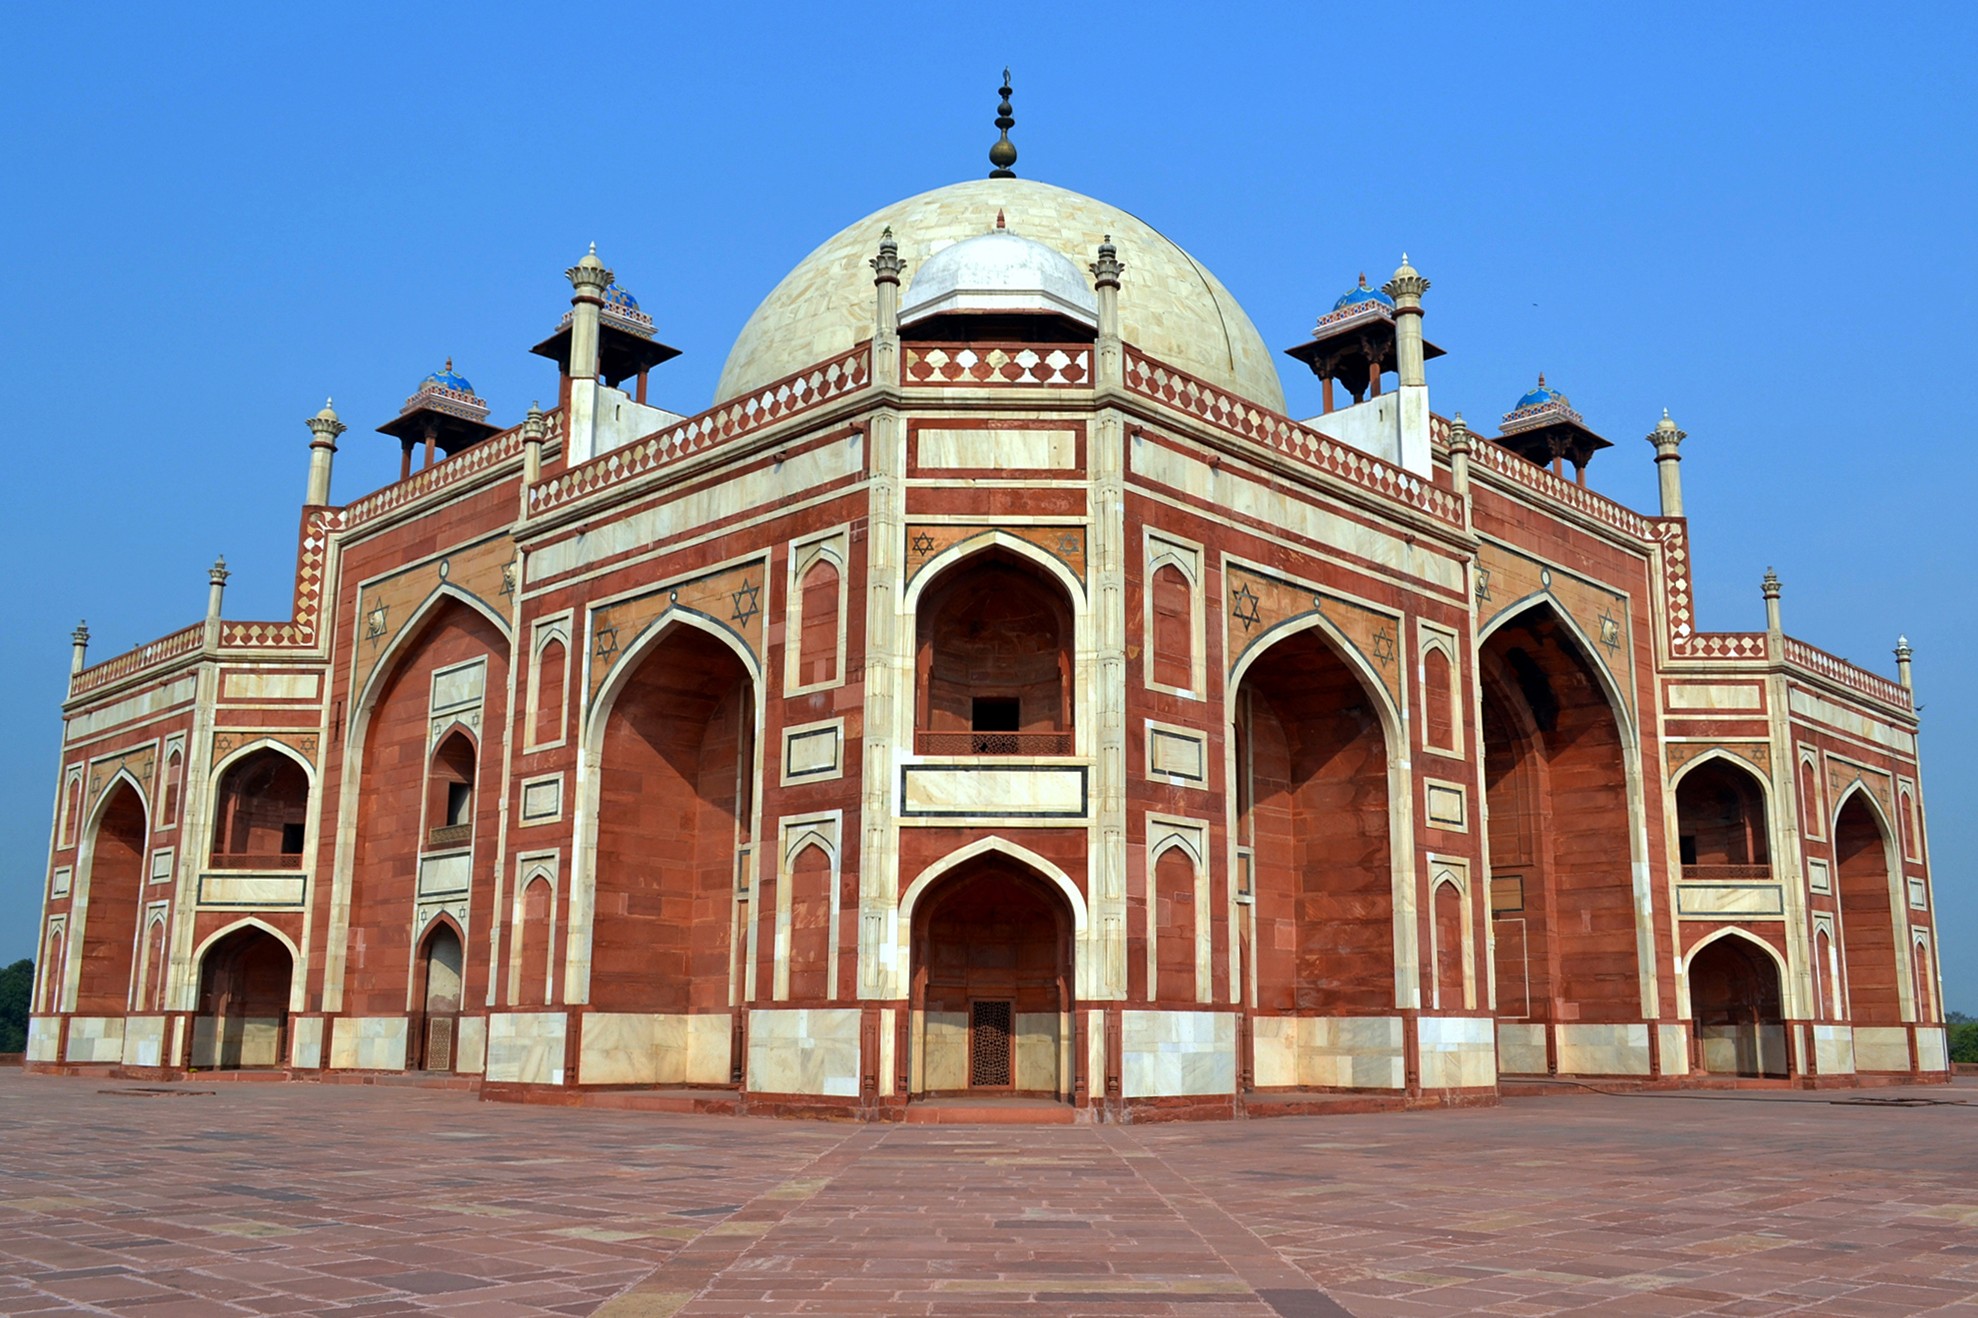 One of the finest examples of Moghul architecture Humayun's Tomb looks perfectly symmetrical from this angle.